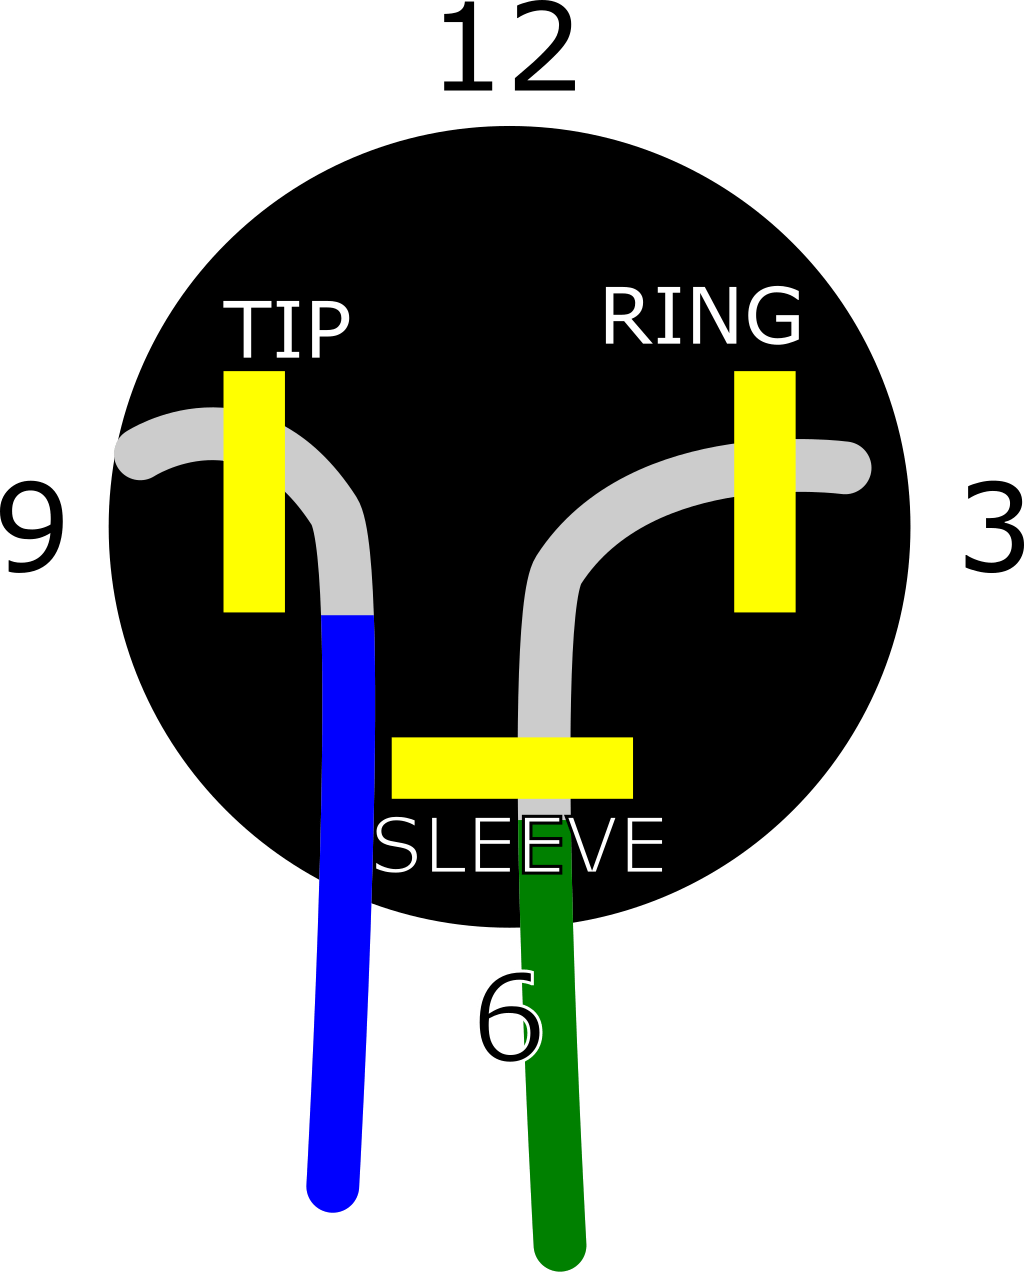 wiring mono tip and ring wiring diagrams click USB to 1 8 Jack stereo jack with mono configuration atmakers 1 8 jack diagram sleve tip wiring mono tip and ring